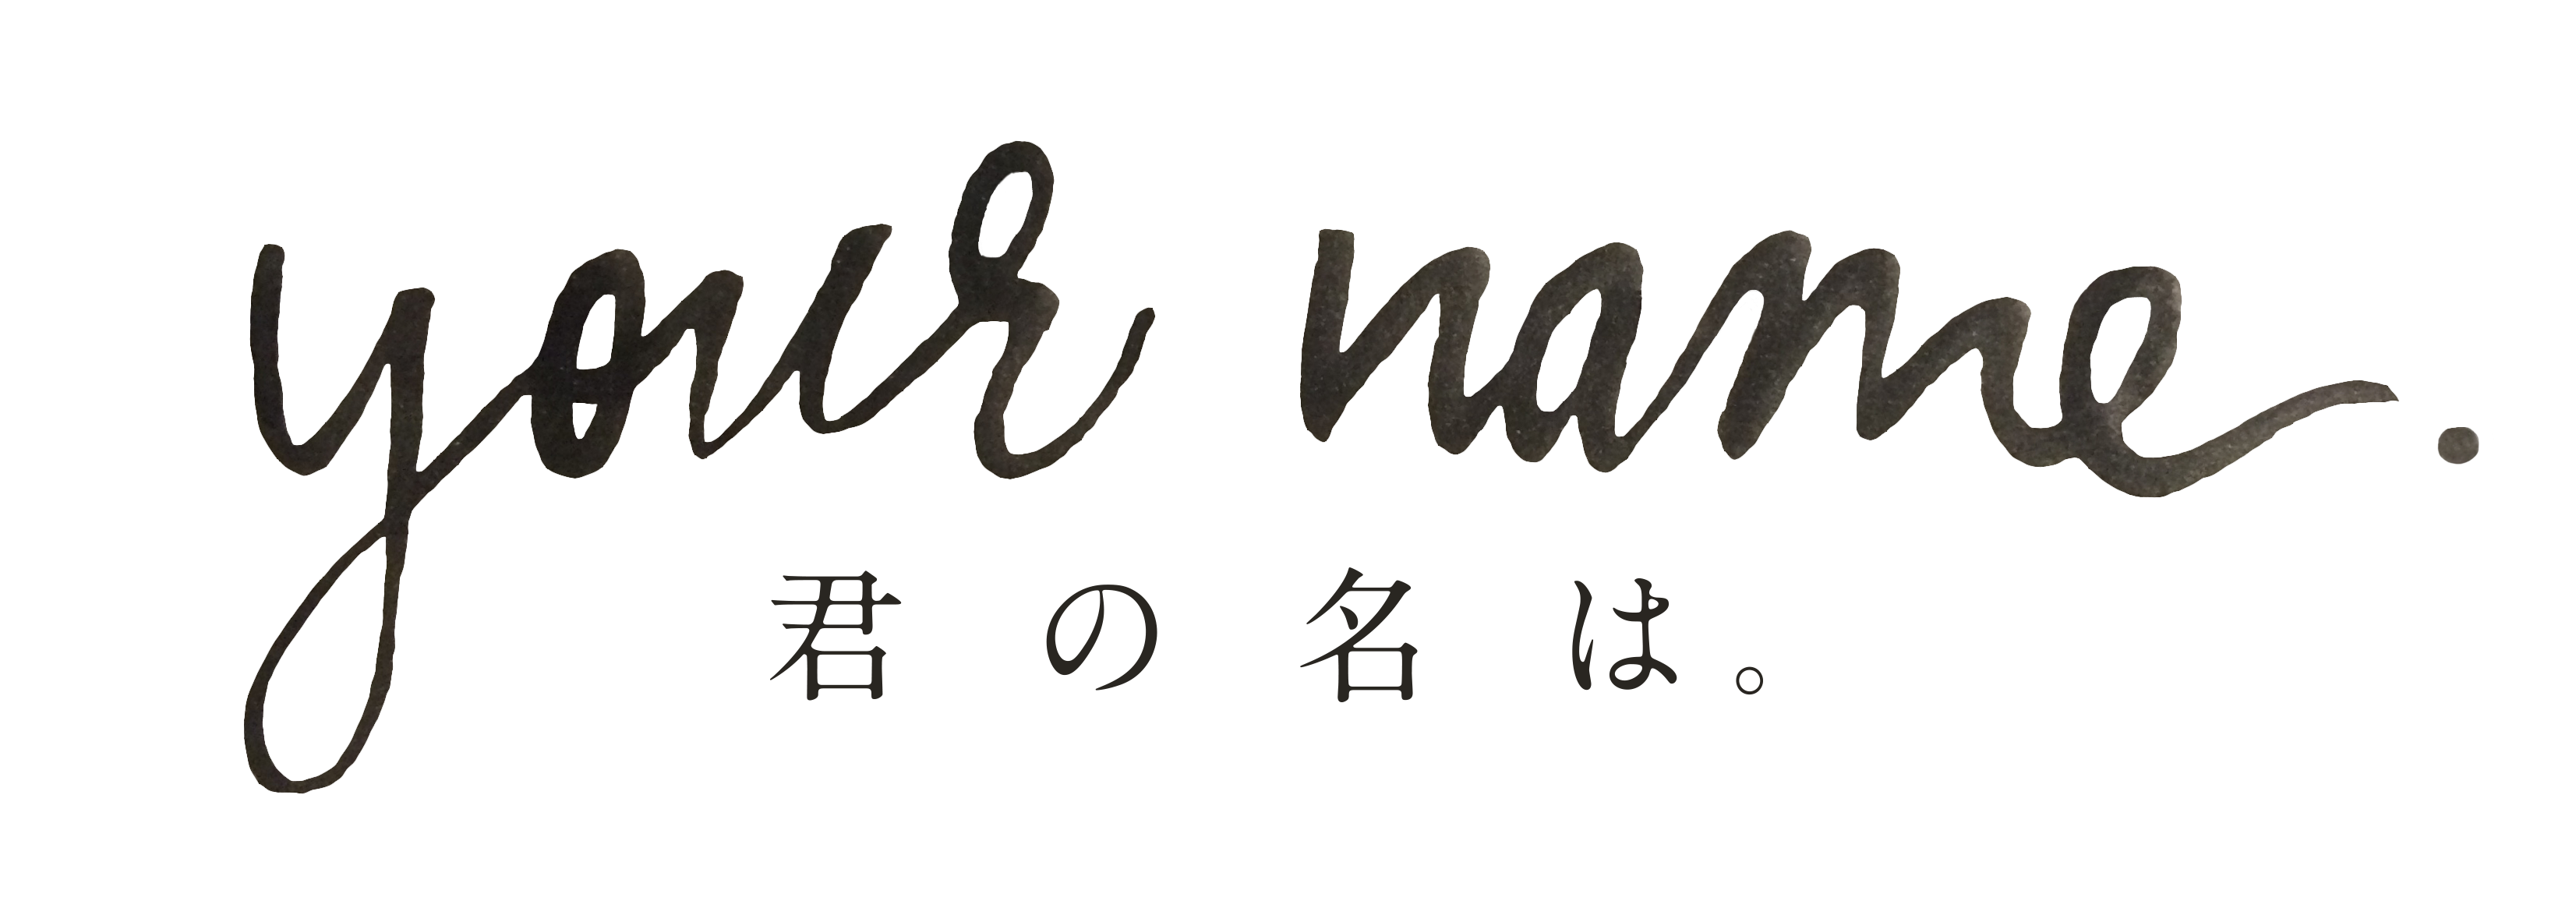 Your Name. Backgrounds, Compatible - PC, Mobile, Gadgets| 3305x1183 px